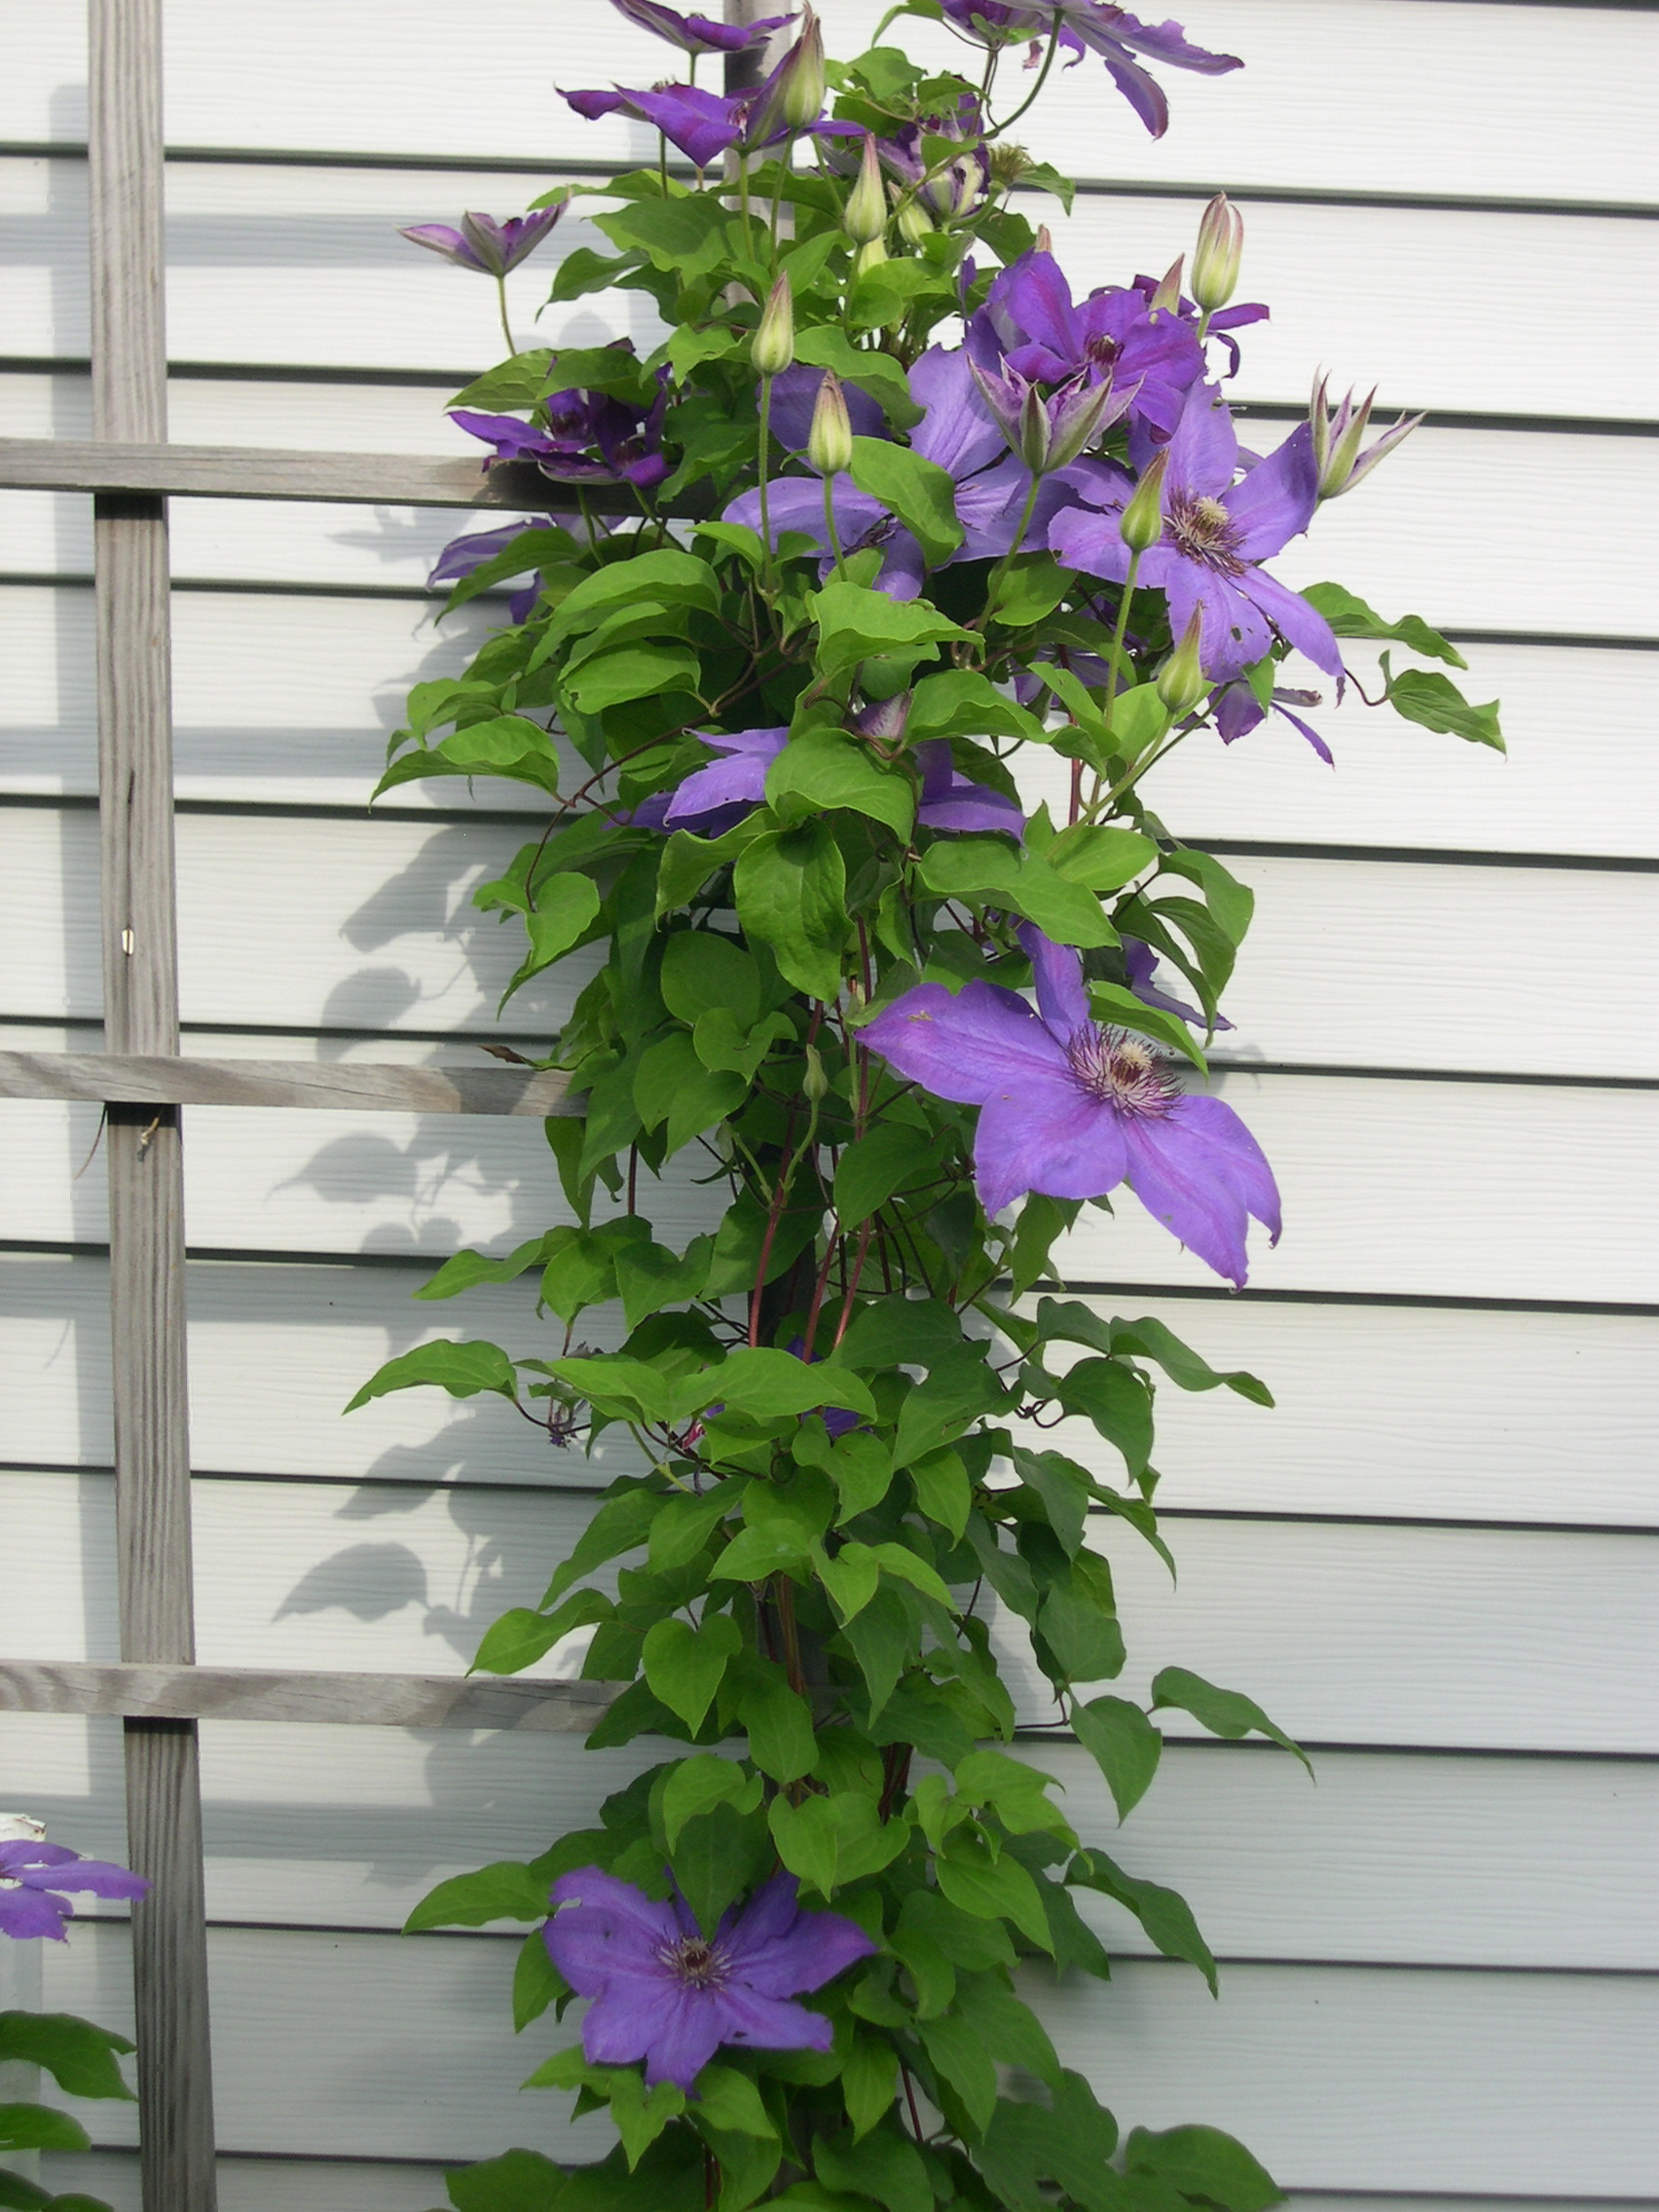 clematis reaching for the sky